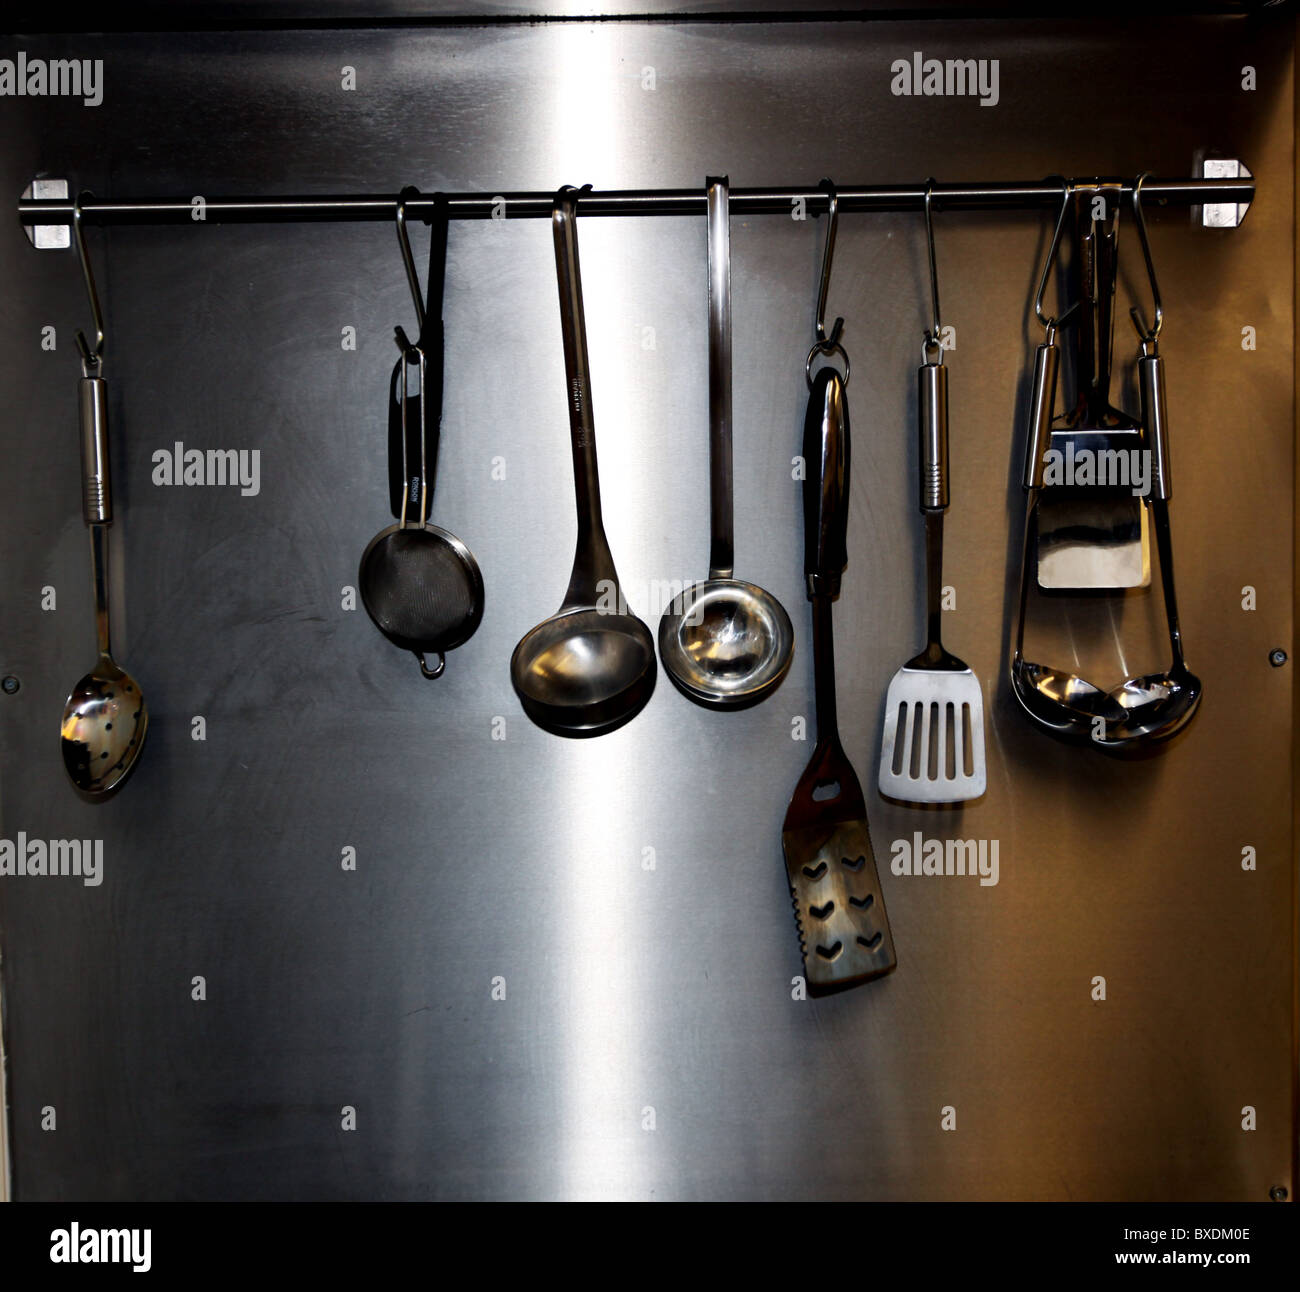 Cooking utensils hanging on rail in commercial kitchen Stock Photo